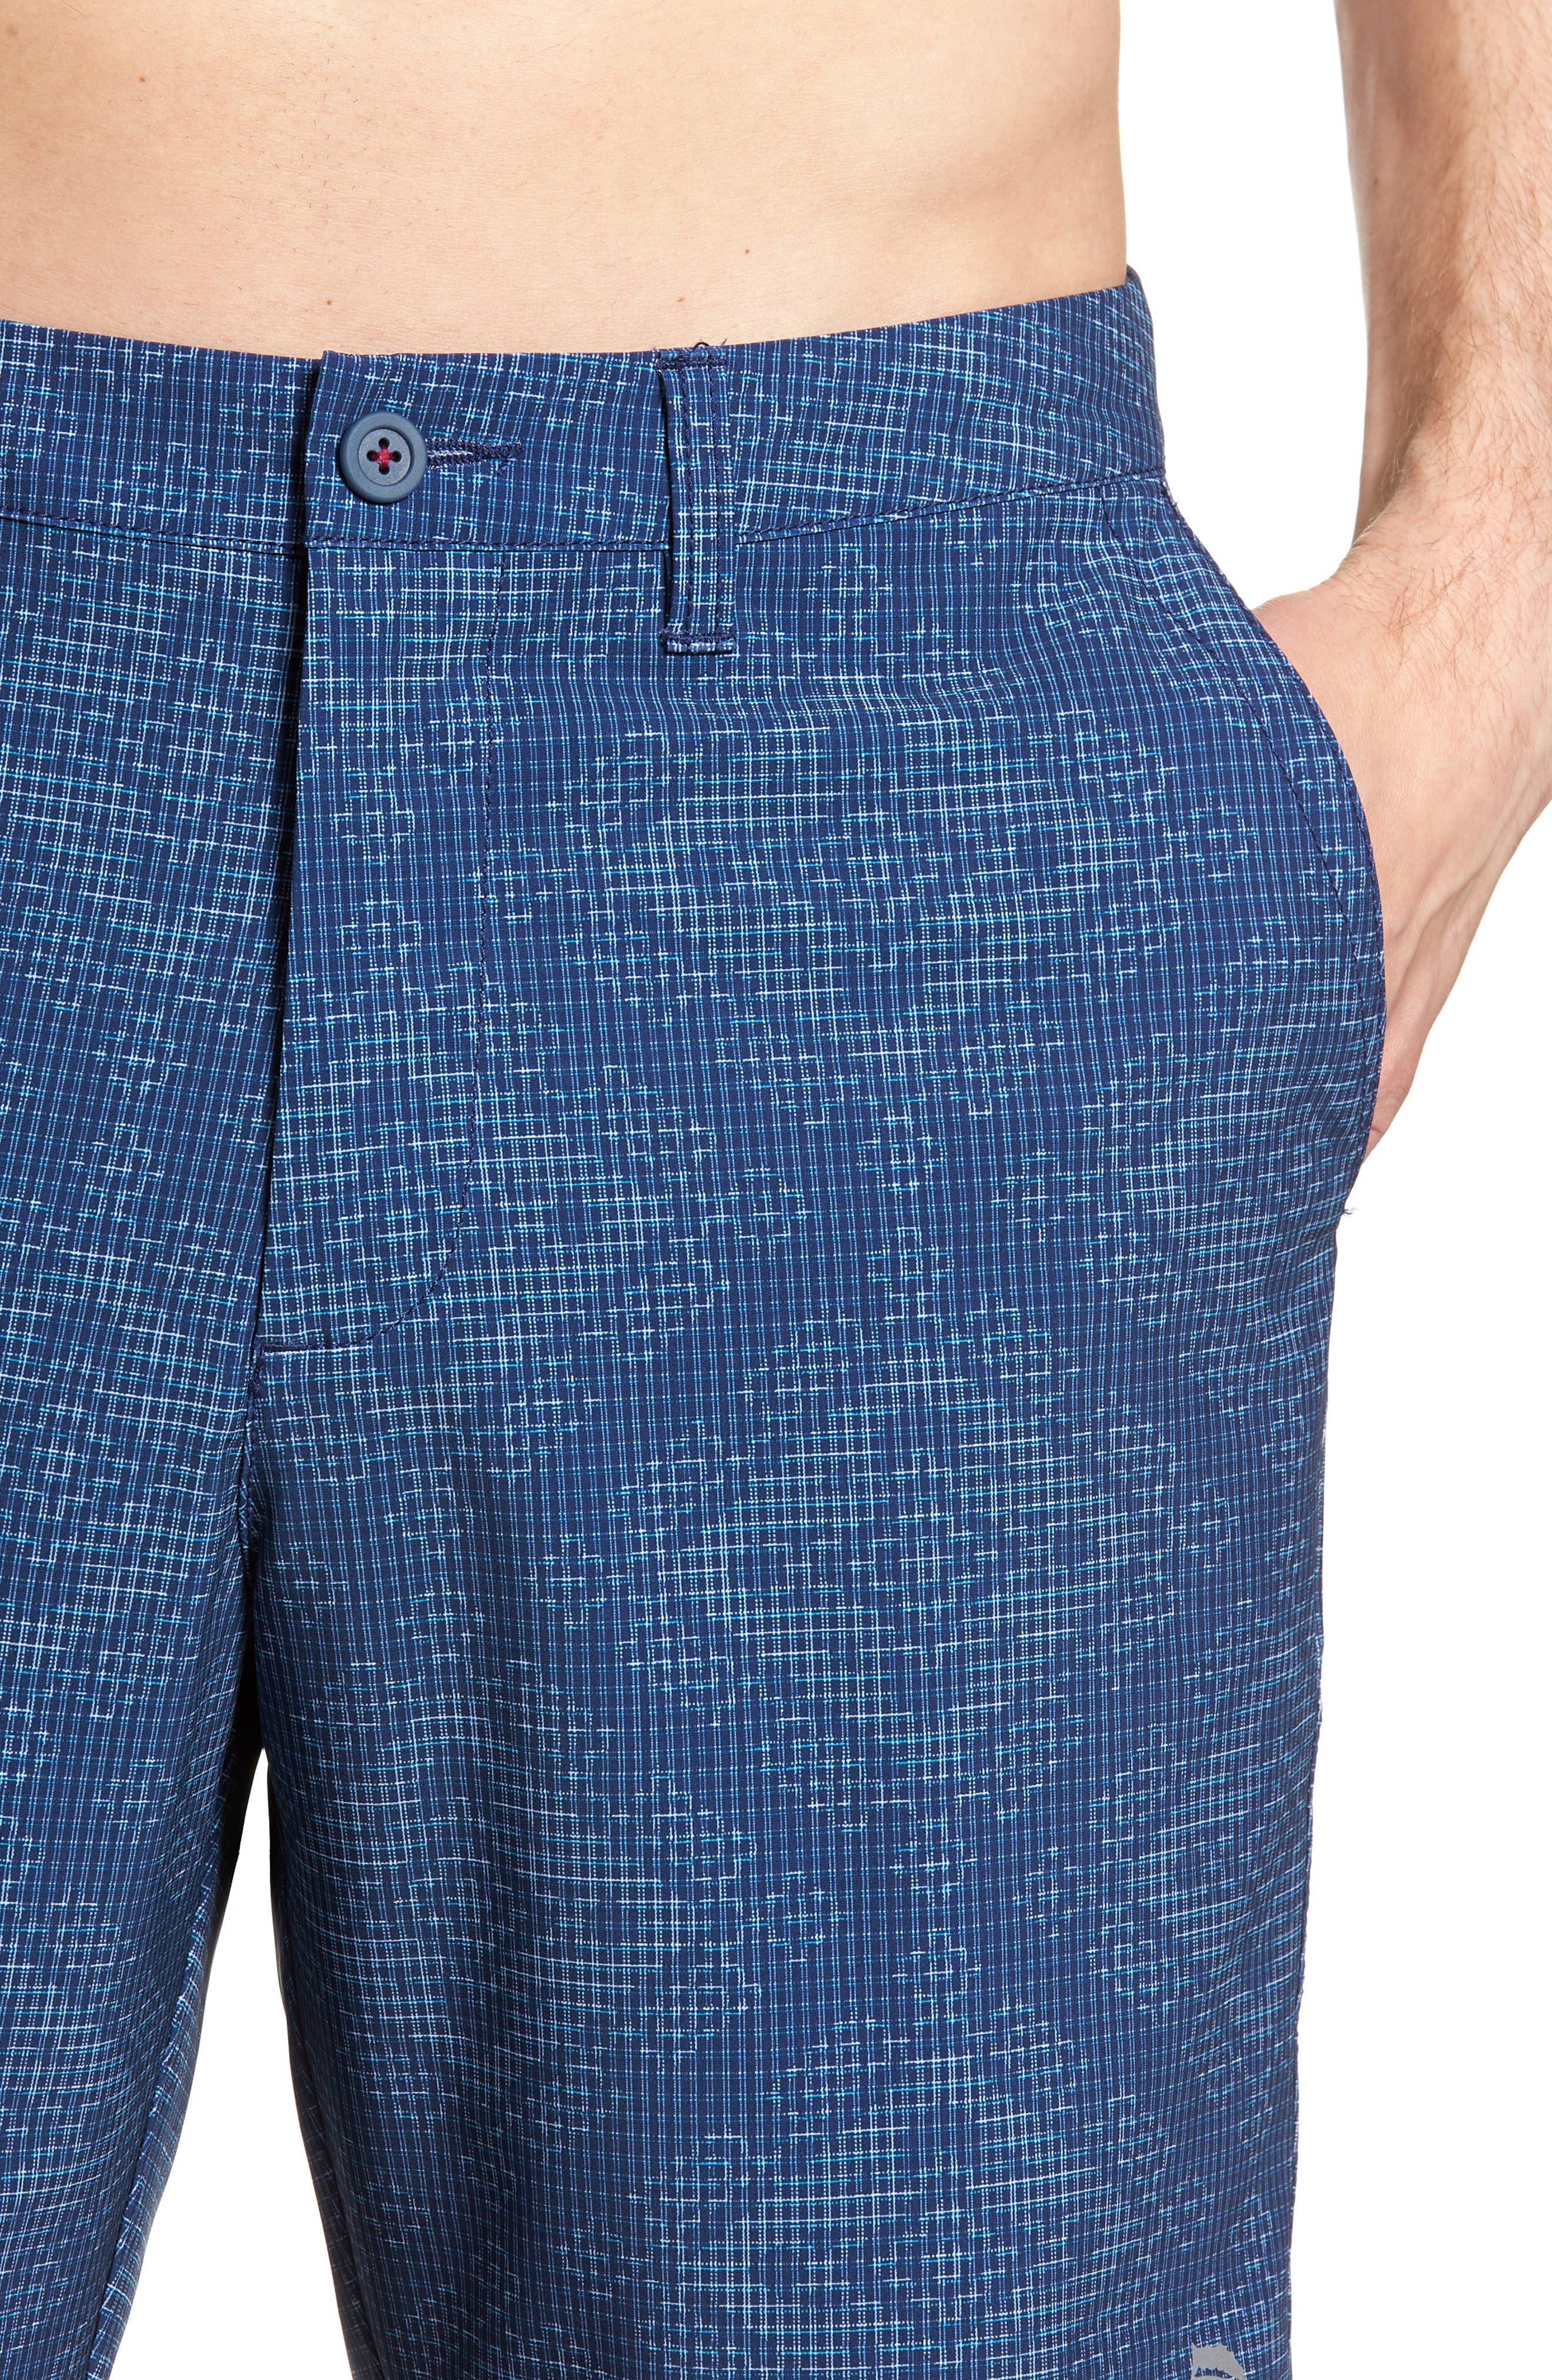 Cayman Geo de Mayo Swim Trunks,                             Alternate thumbnail 4, color,                             Throne Blue